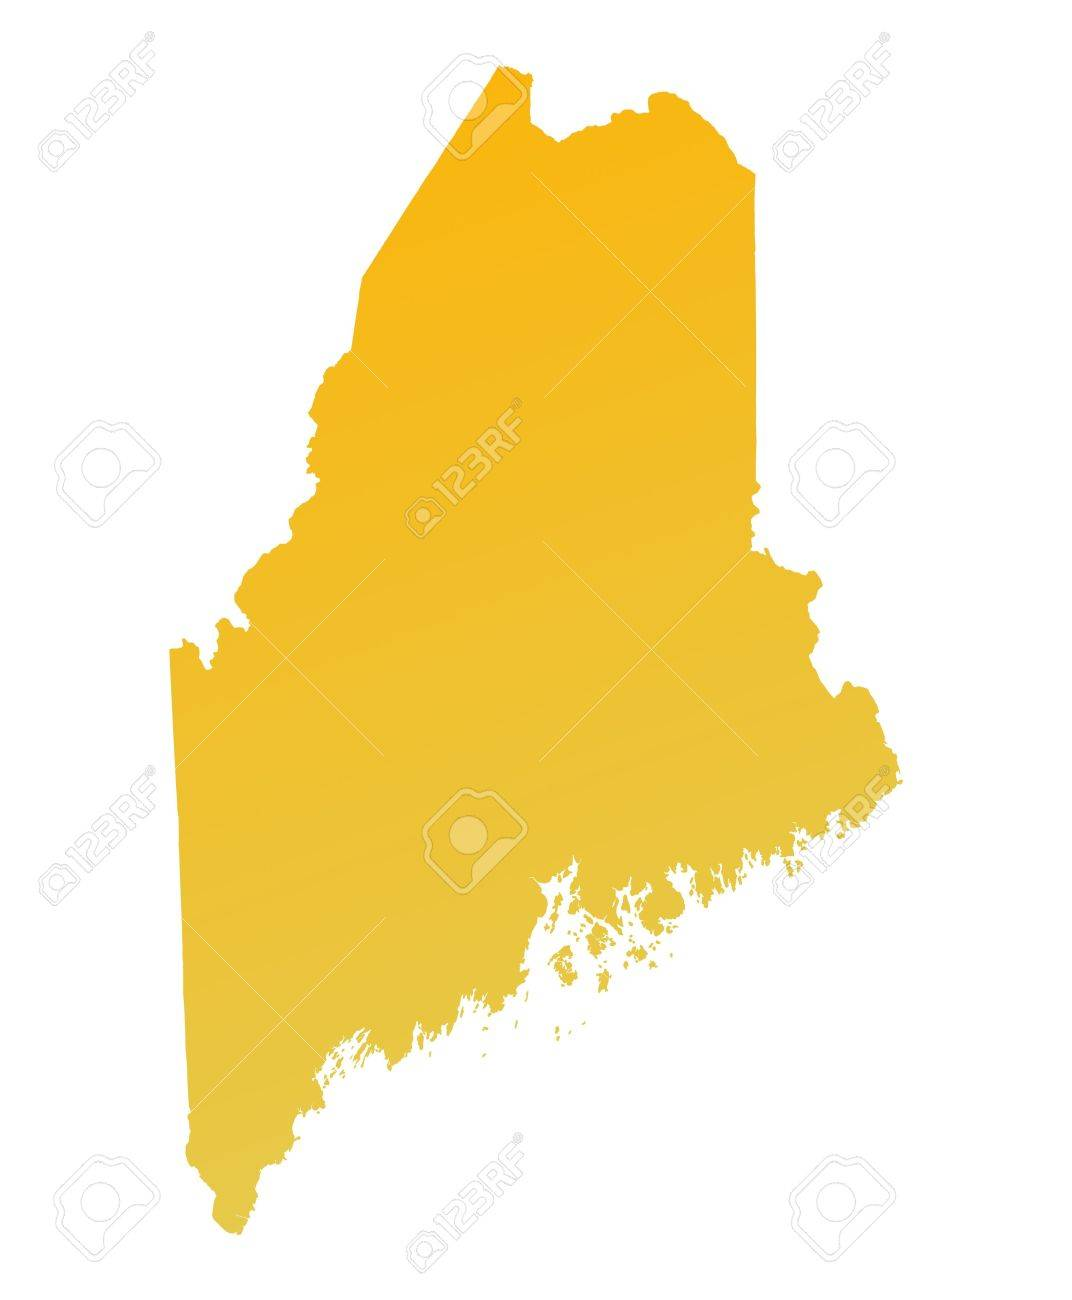 Maine Map Usa.Orange Gradient Maine Map Usa Detailed Mercator Projection Stock